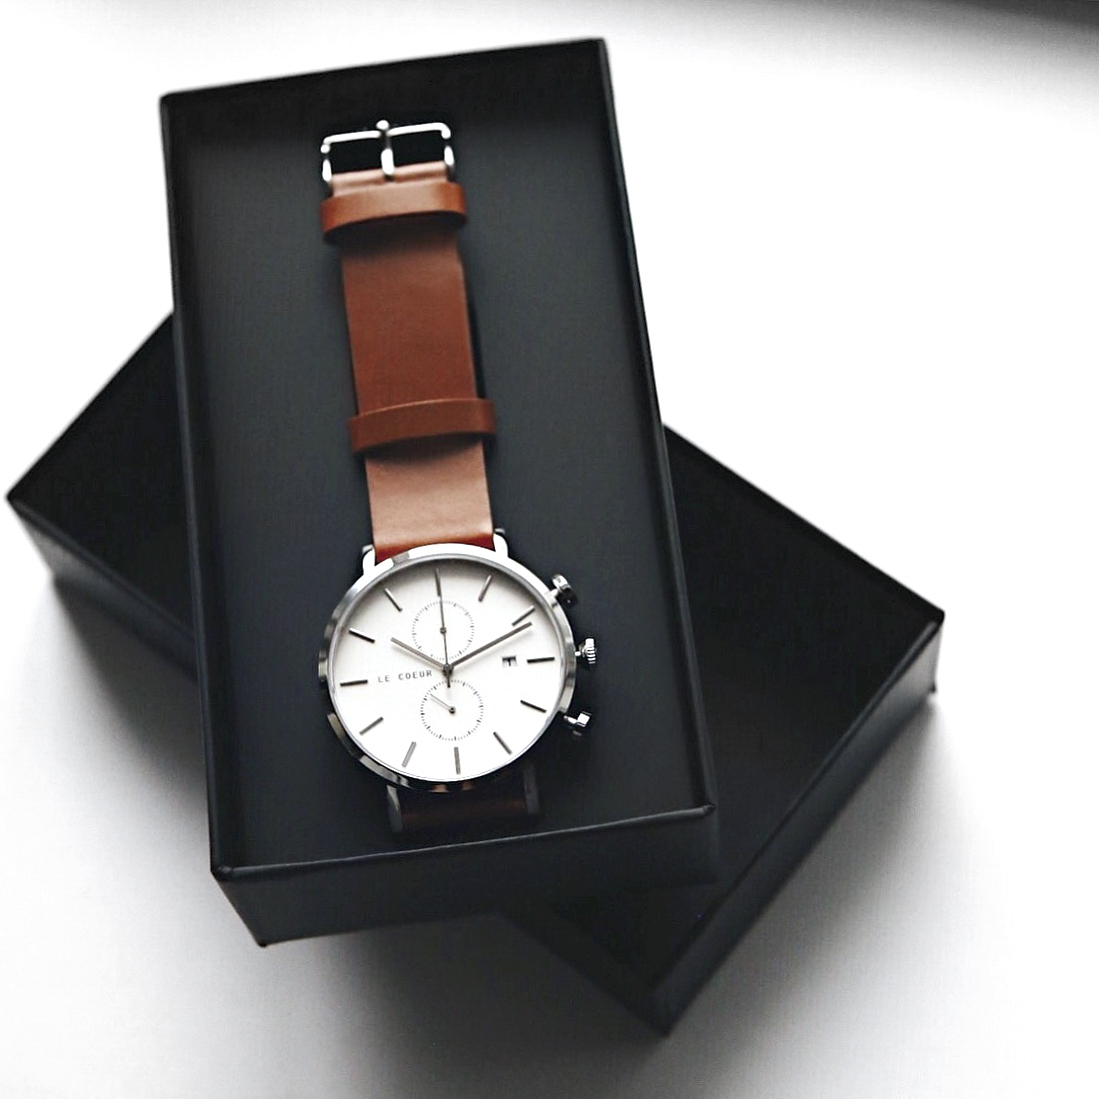 Le Coeur Steel and Brown Cambridge Chronograph Watch3.jpg